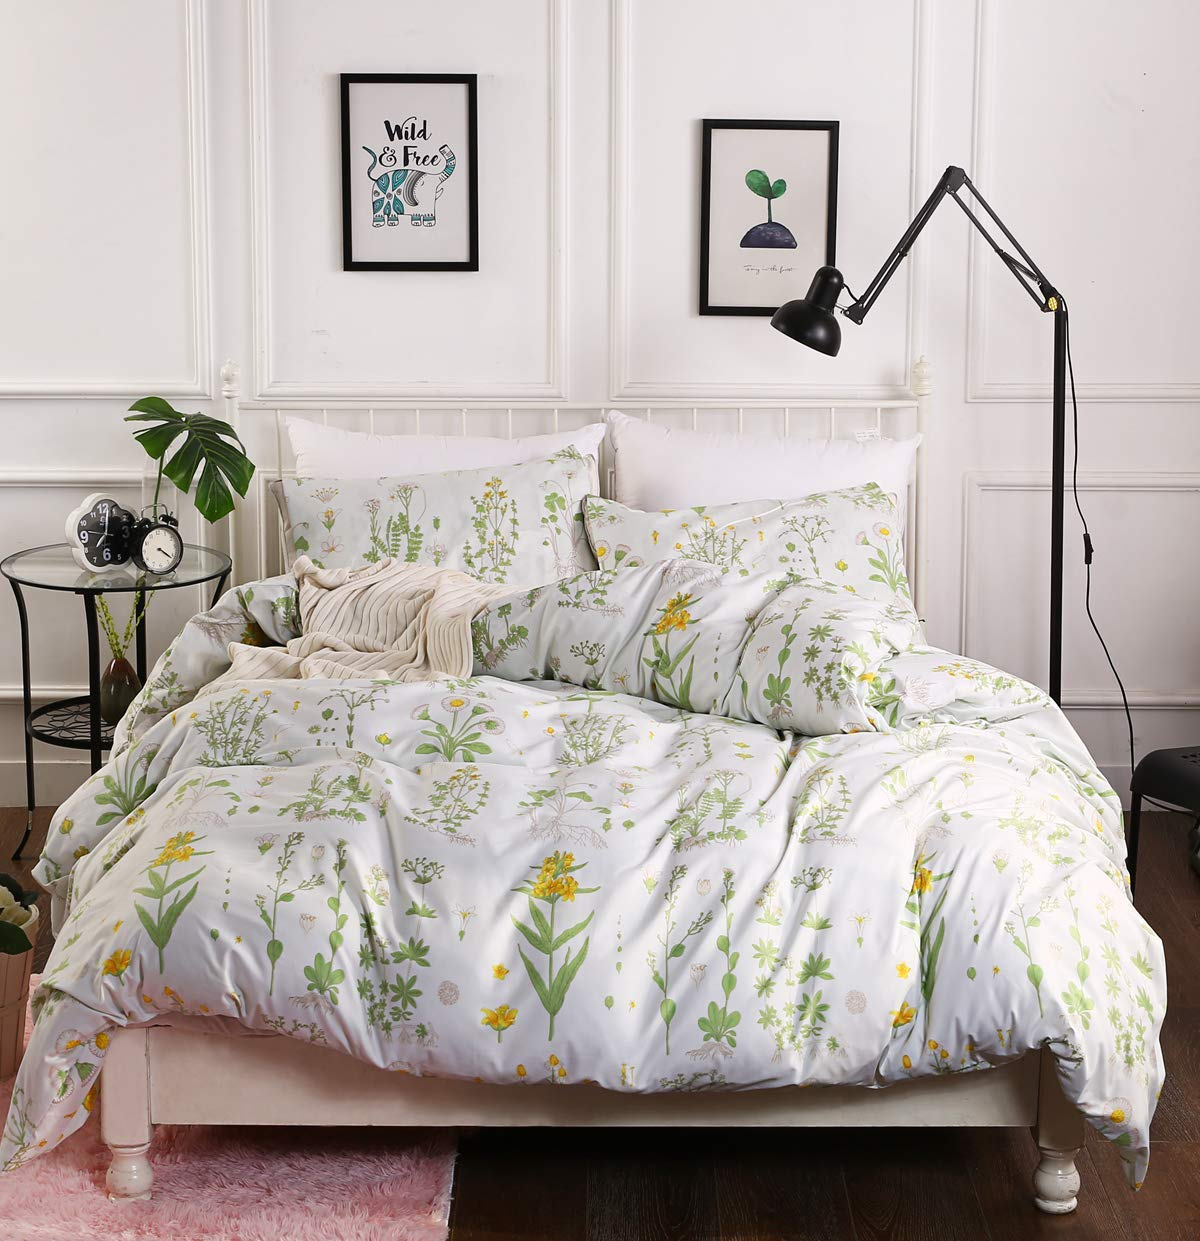 ADASMILE A & S Pastoral Style Floral Plant Canary Yellow Kids Girls 2 Pieces Duvet Cover Set with Zipper Twin (68''x90'')-(1 Duvet Cover + 1 Pillow Shams)-Ultra Soft Hypoallergenic Microfiber